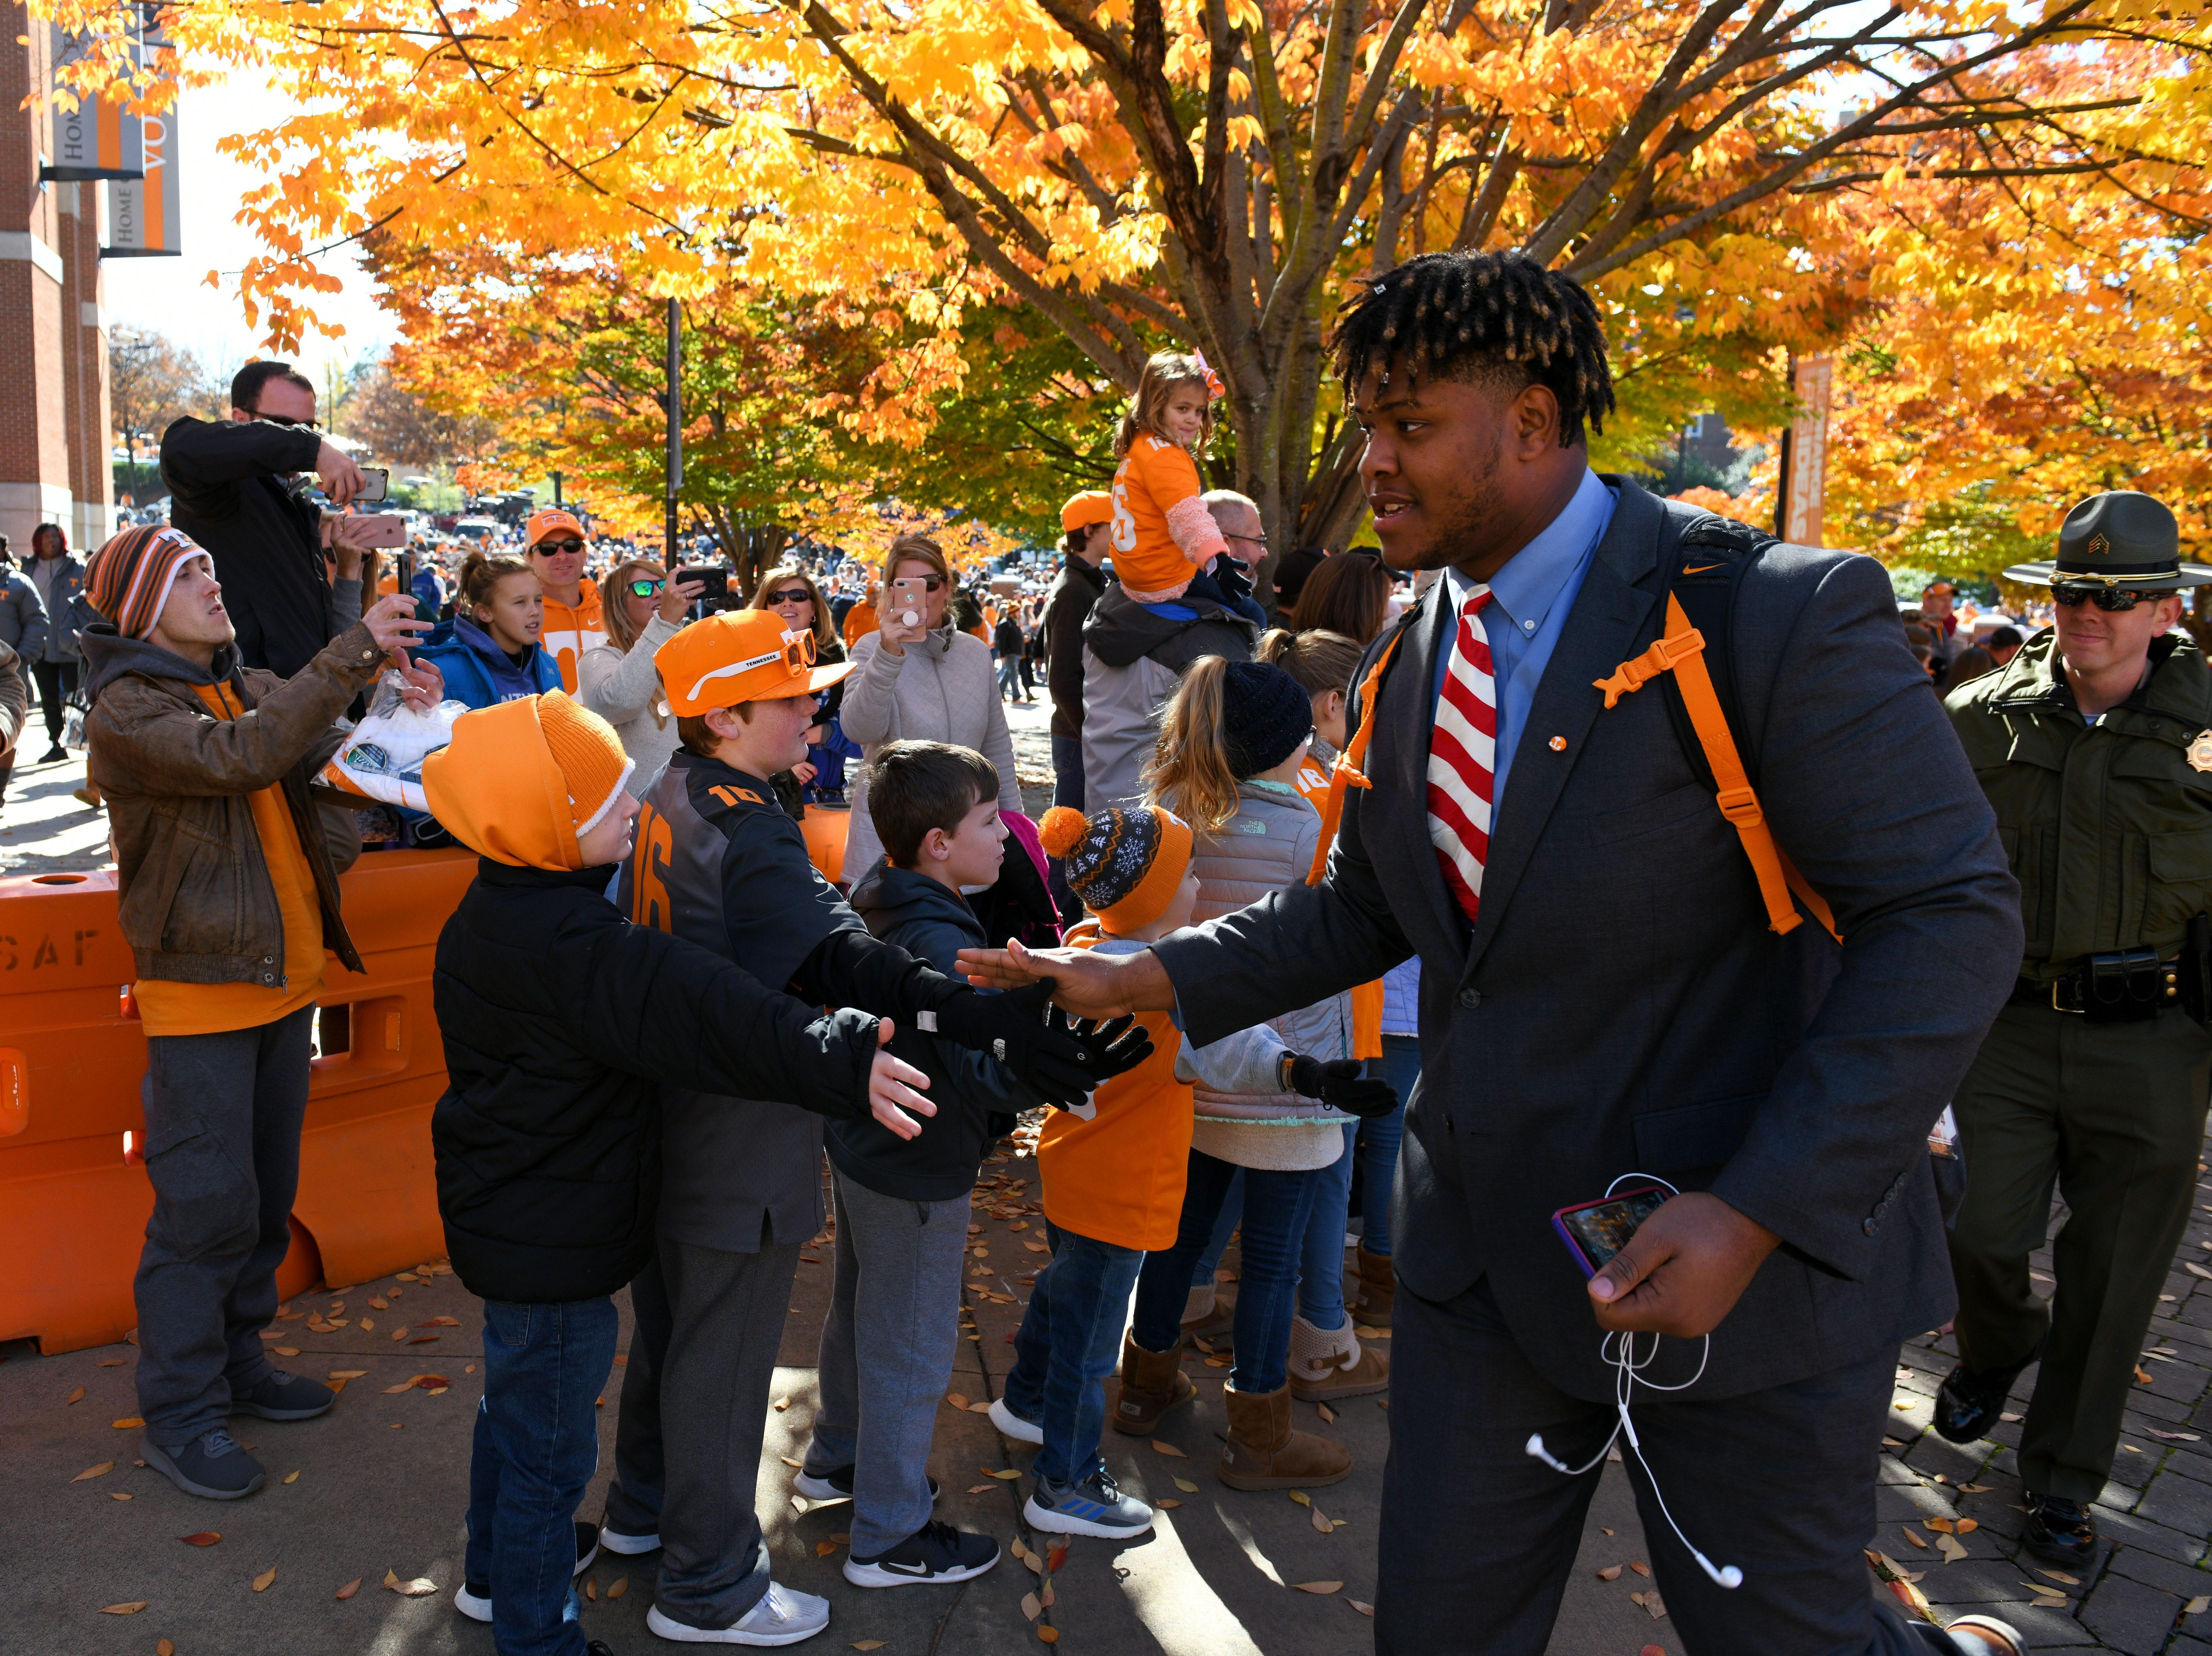 Tennessee players and fans during the Vol Walk before the Kentucky game Saturday, November 10, 2018 at Neyland Stadium in Knoxville, Tenn.